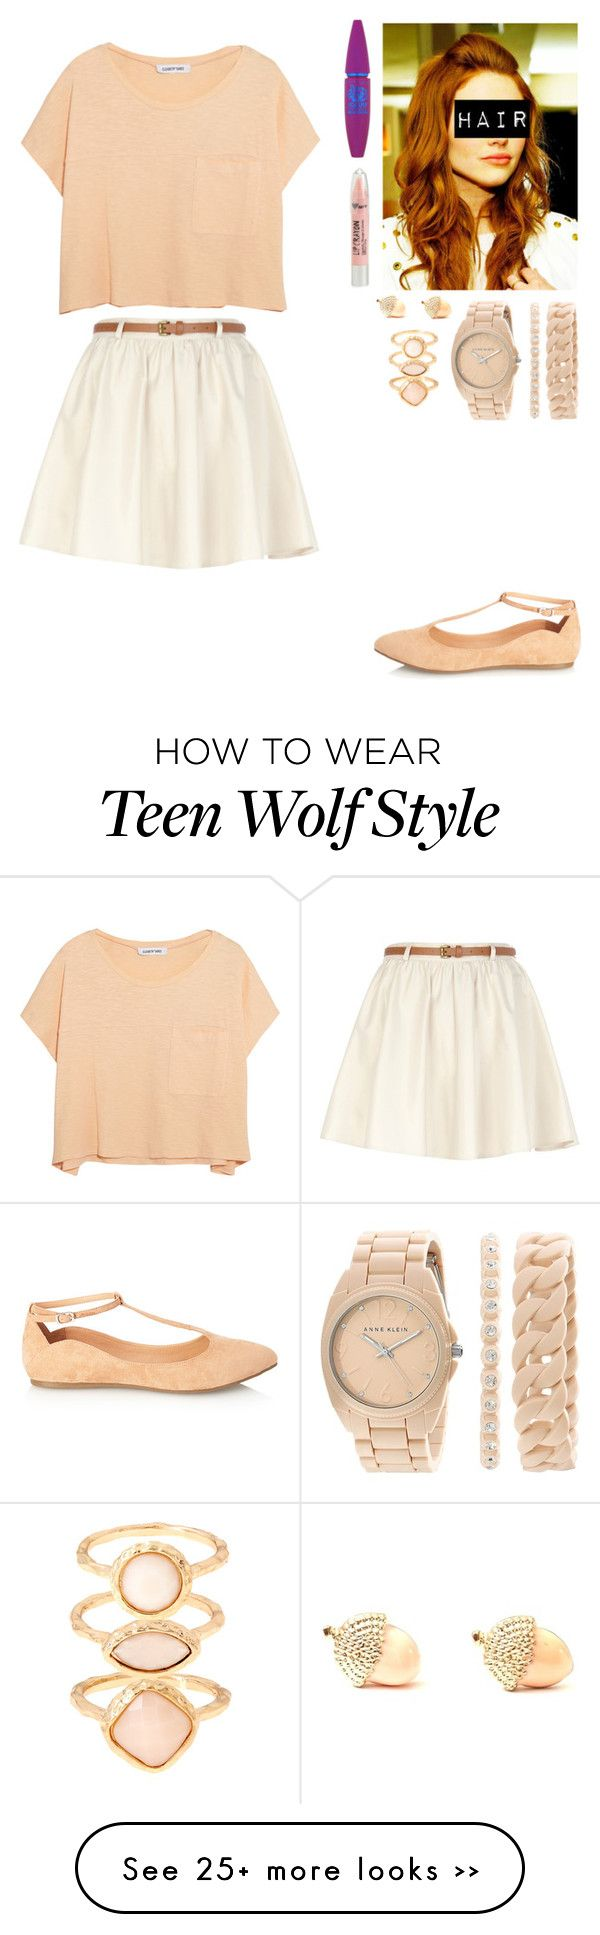 """ the indentions of your fingerprints still scar my skin //"" by tangie-leigh on Polyvore featuring Forever 21, River Island, Elizabeth and James, Aéropostale, Maybelline, Monsoon, Anne Klein, beige, pastels and goldjewelry"